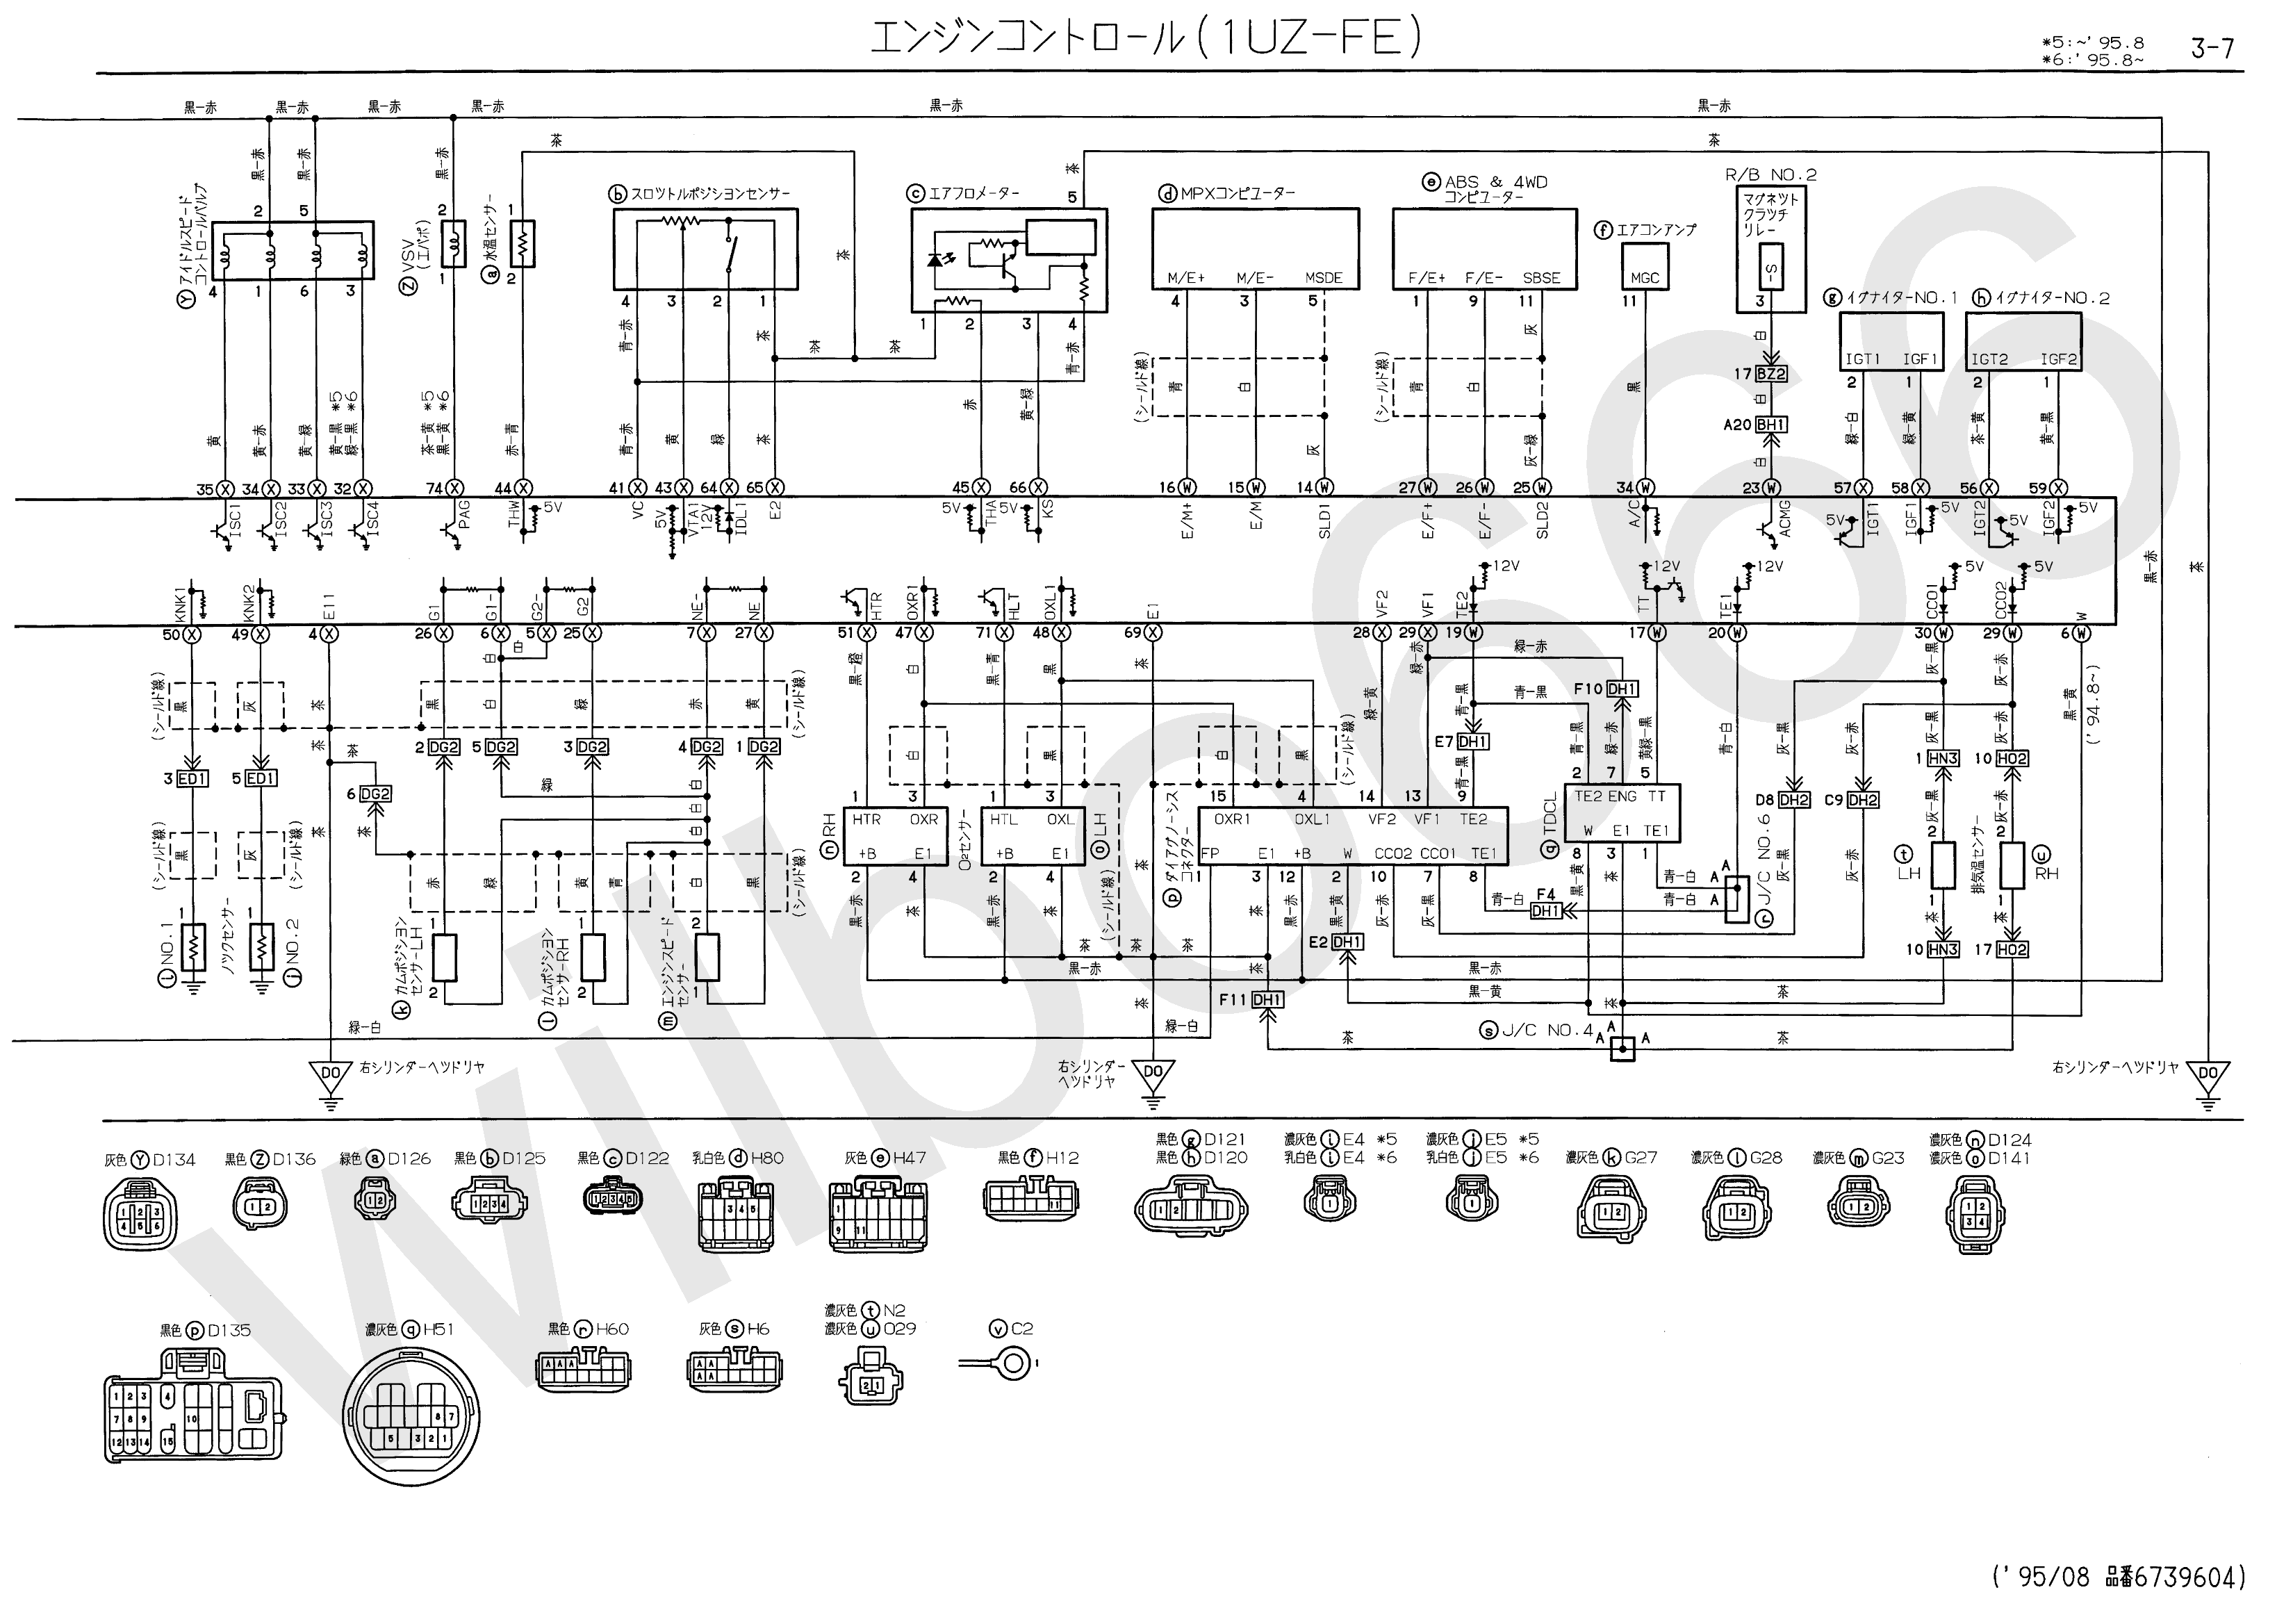 Wiring Vin Reverse Diagram 3b7mc33d6vm525478 - Block And Schematic ...